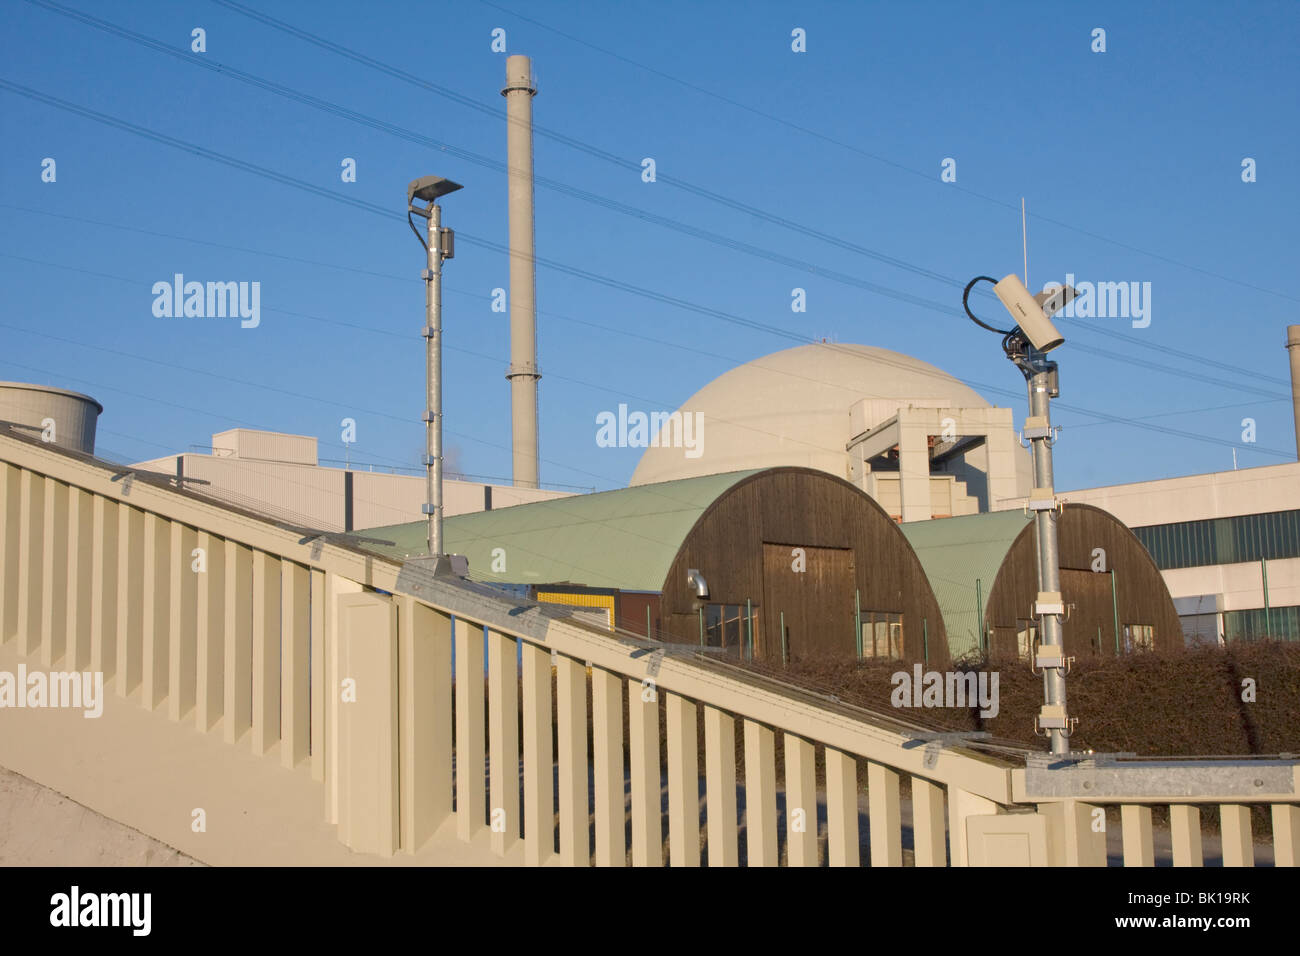 Nuclear power reactor - Stock Image